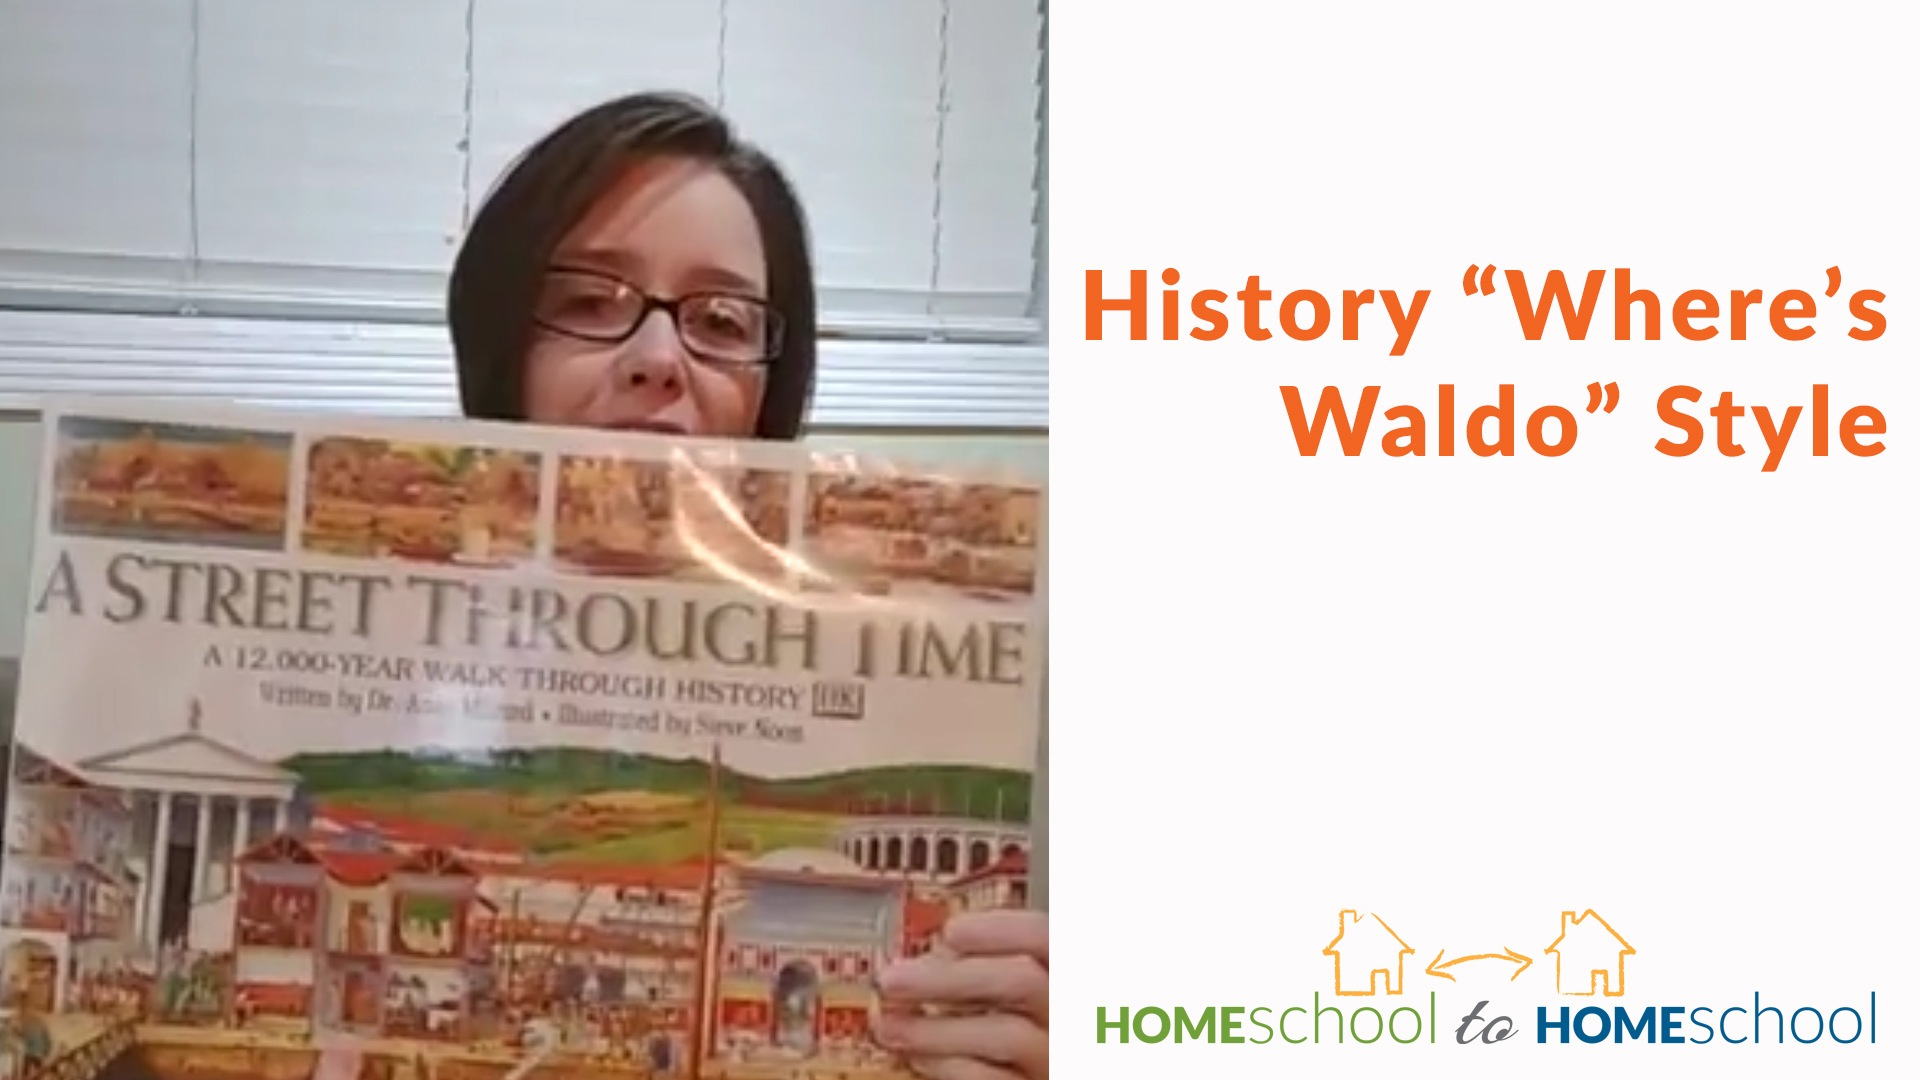 A Street Through Time Book Review - History